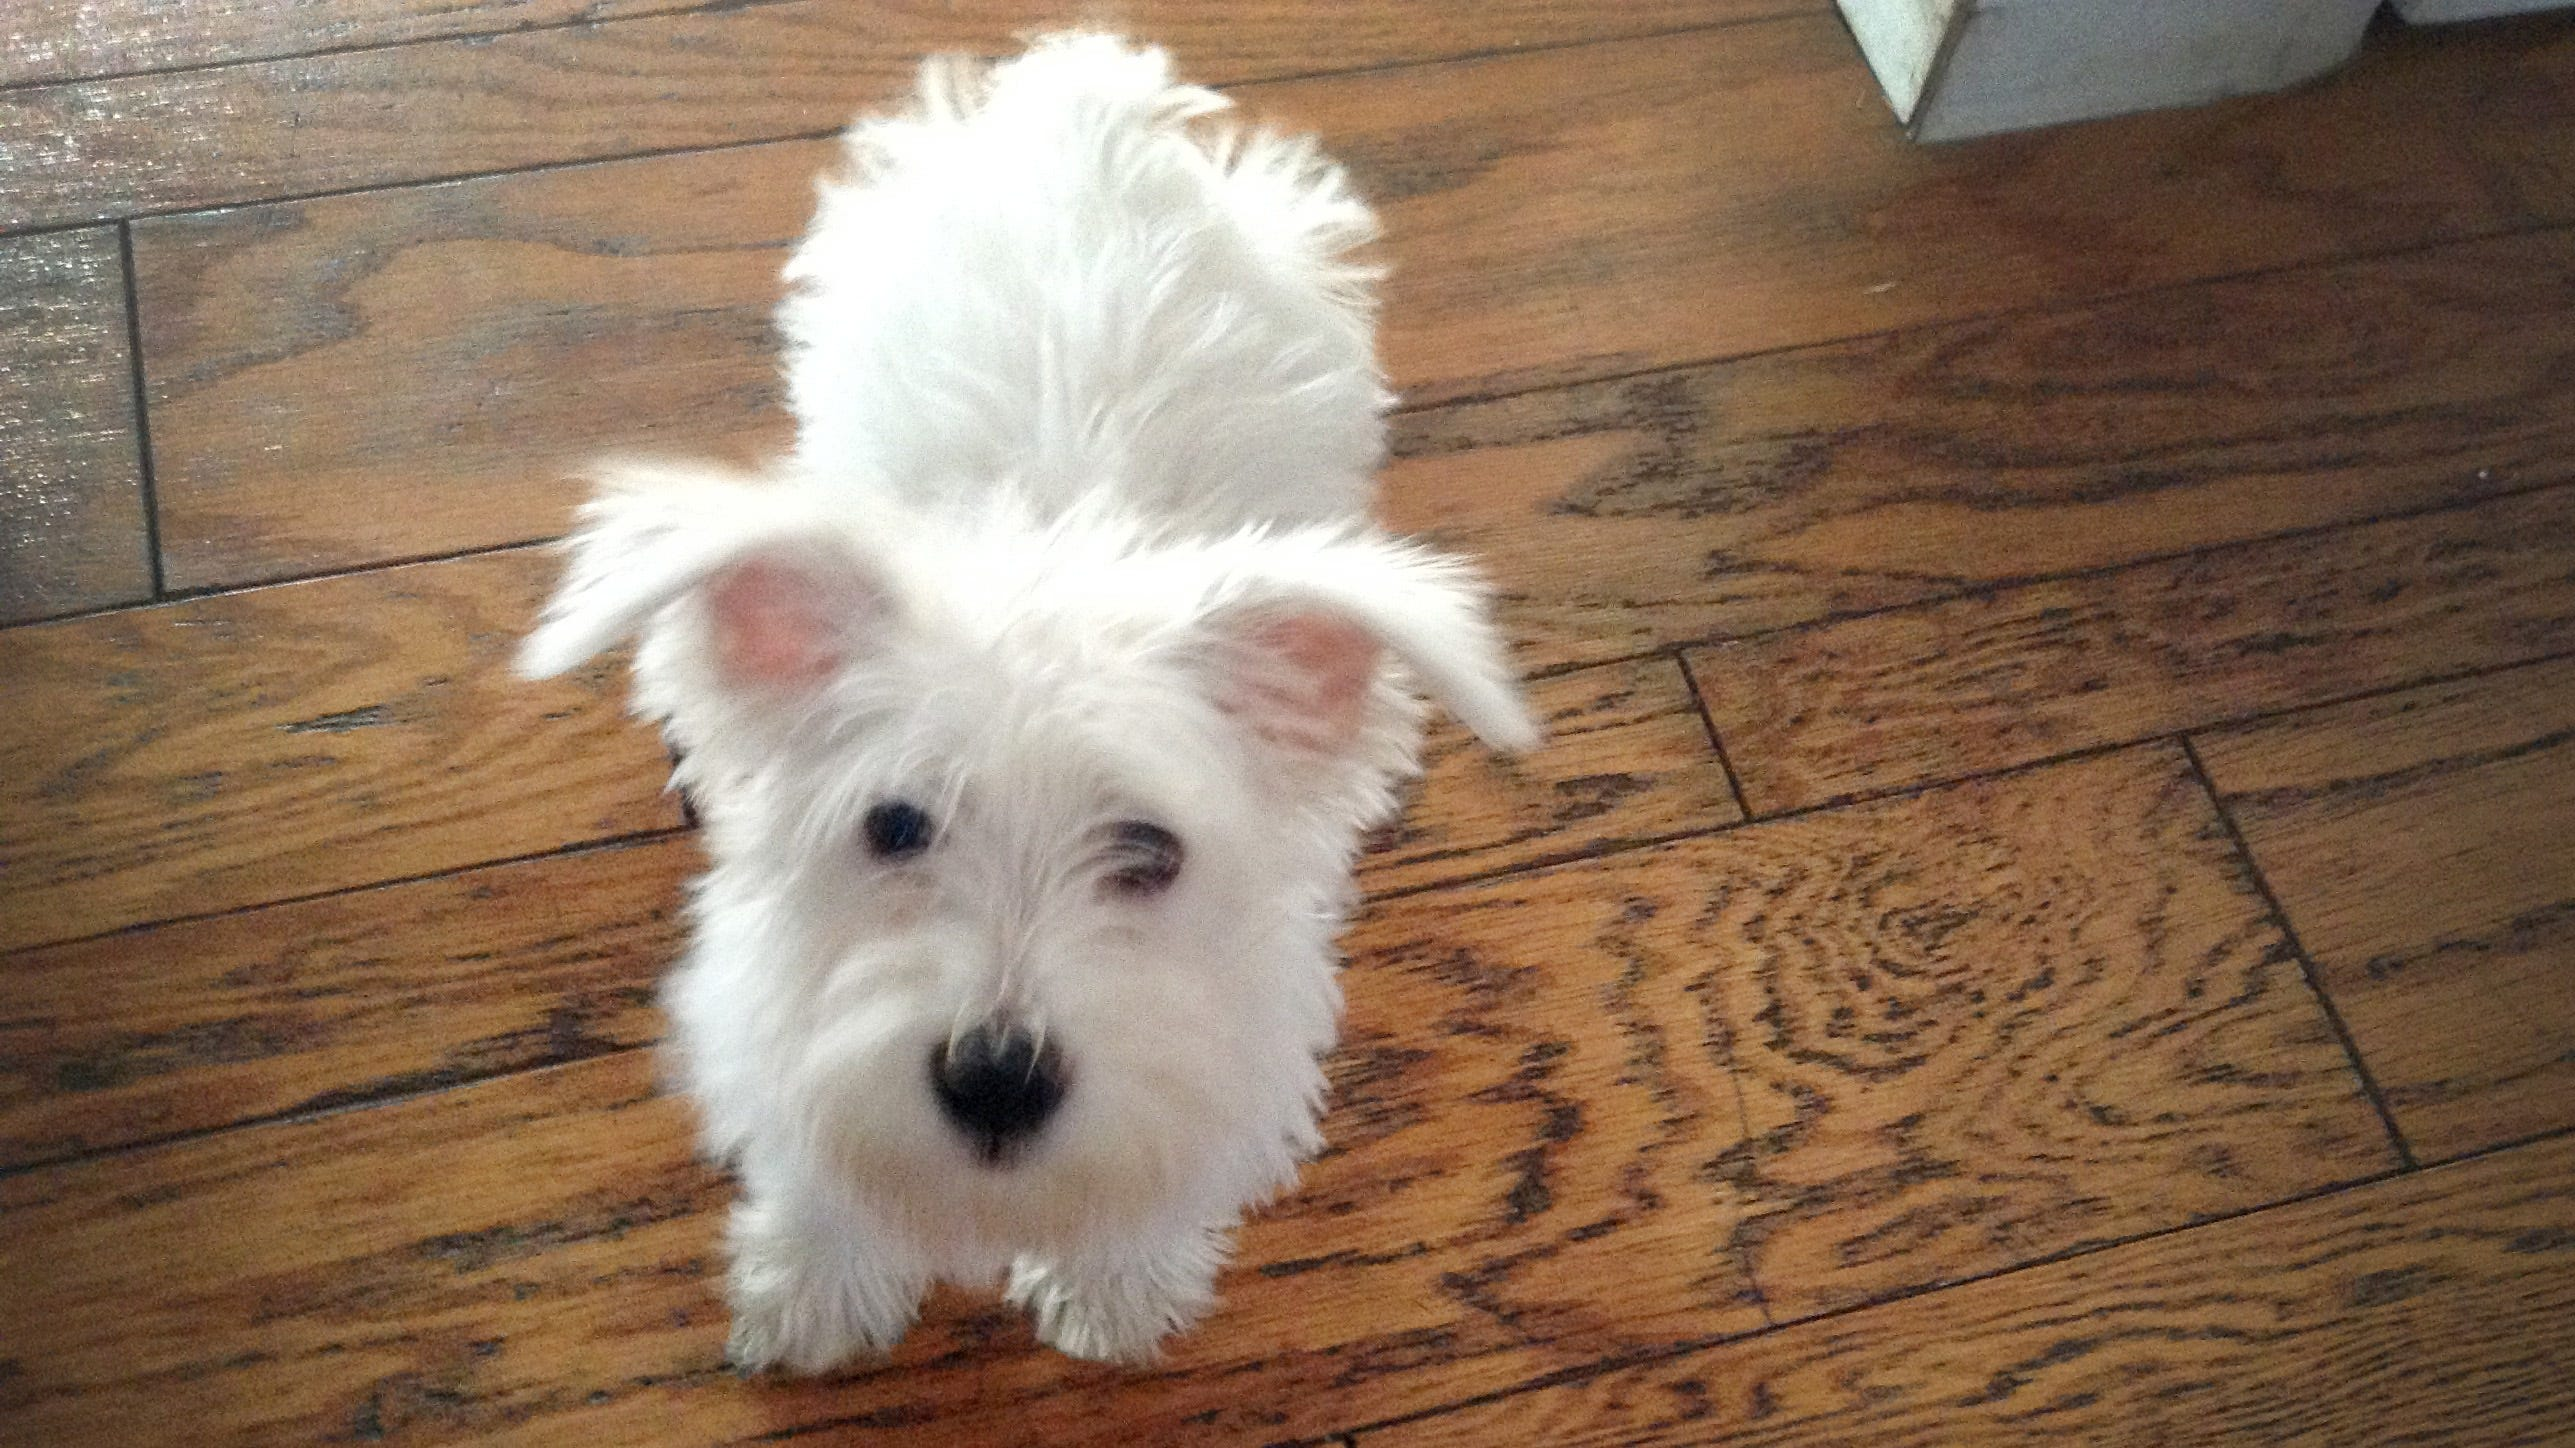 Family: Petland sold us a dying dog